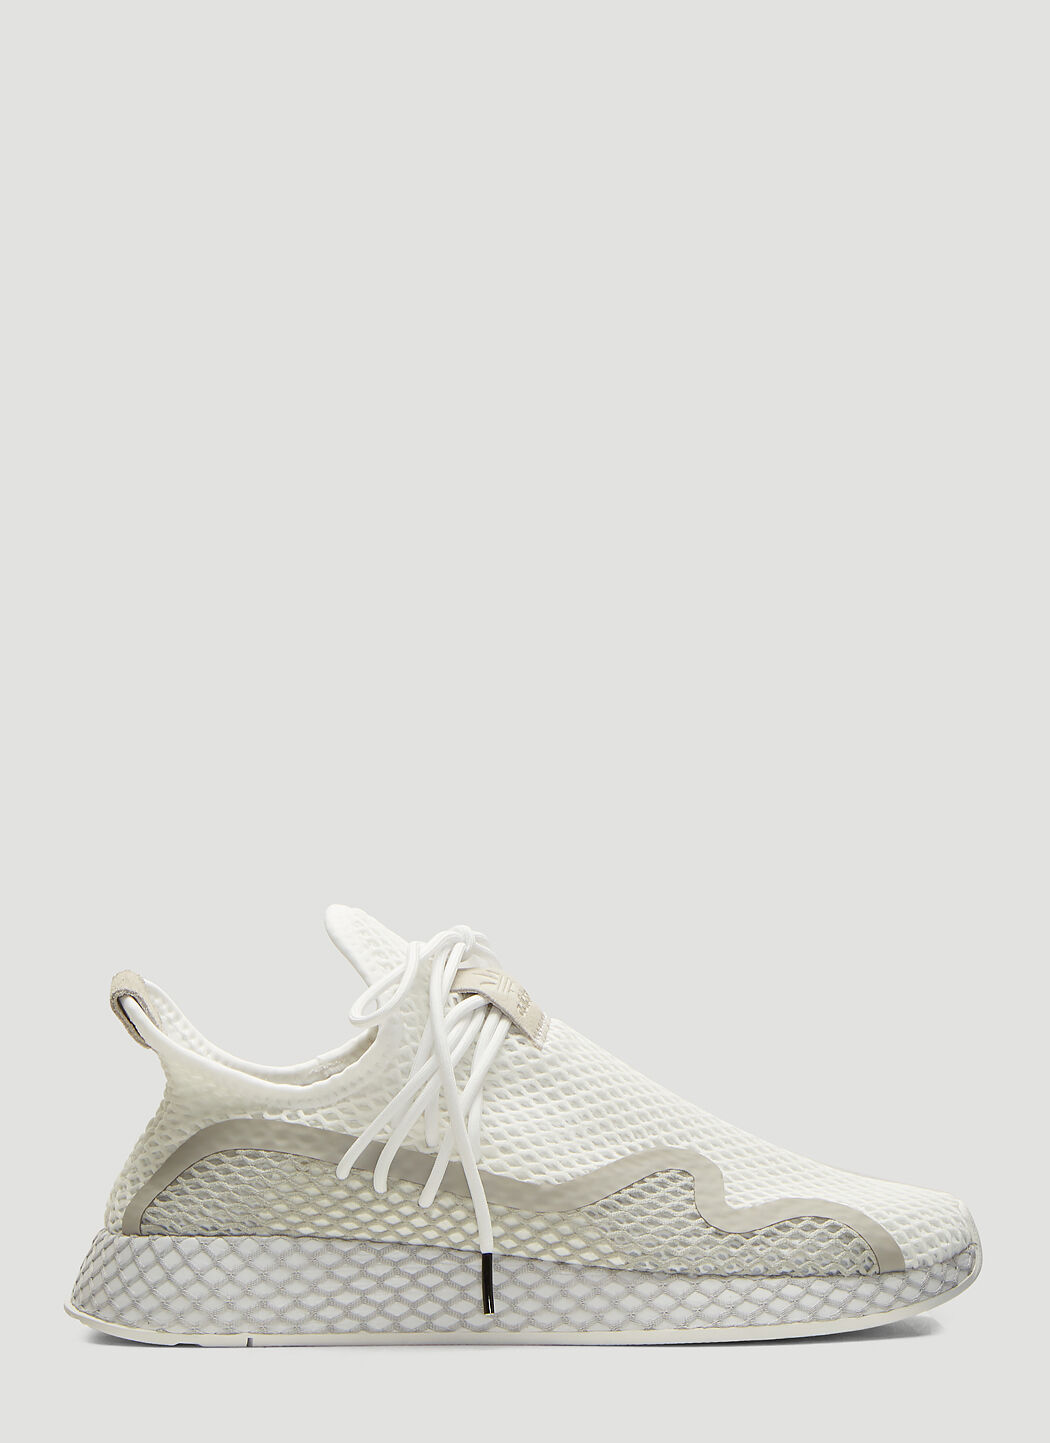 Adidas Deerupt Runner Shoes in White   LN CC